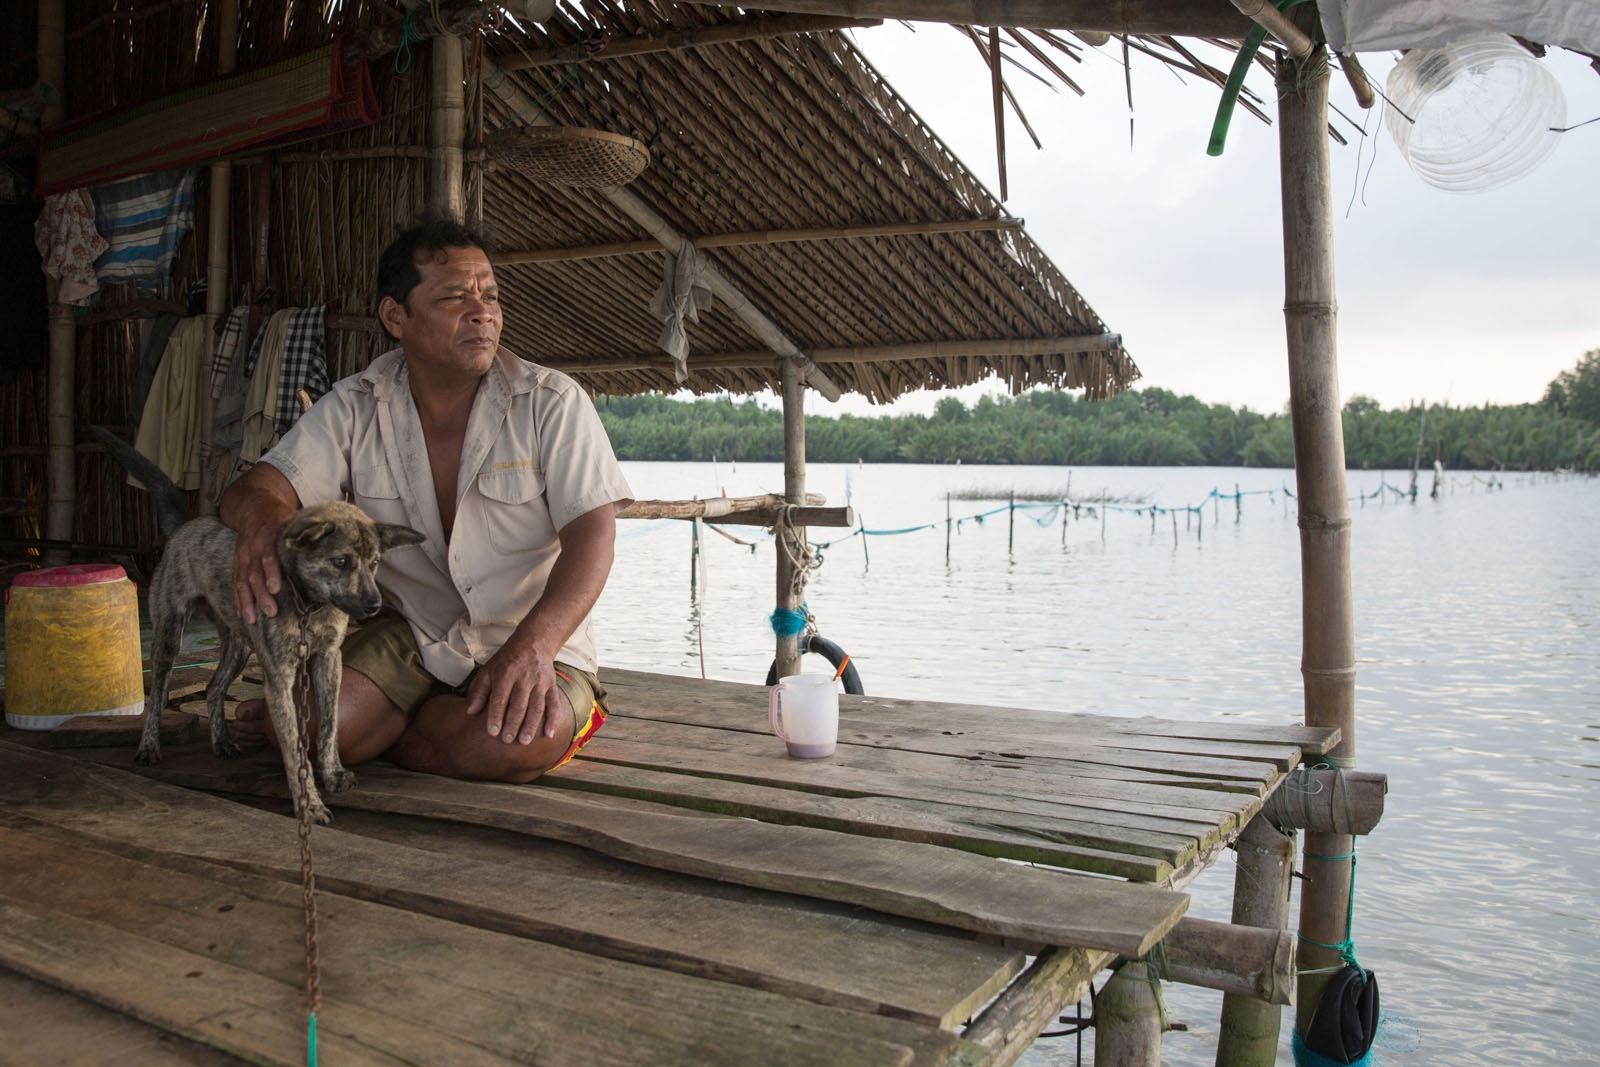 Nguyen Van Chien, 50, sits on his stilted house in the middle of Thi Tuong Lagoon with his trusted guard dog. With the quantity of fish caught in the lake reduced by 3x in the last decade he invested in growing clams. They can be harvested only once a year because the gestation period lasts 9 to 10 months but he can sell them for approximately US$35/kg for large ones and US25/kg for smaller ones. One of the main causes he believes that is responsible for the reduced fish stocks is the fertiliser run-off from nearby shrimp farms that pollute the lake.